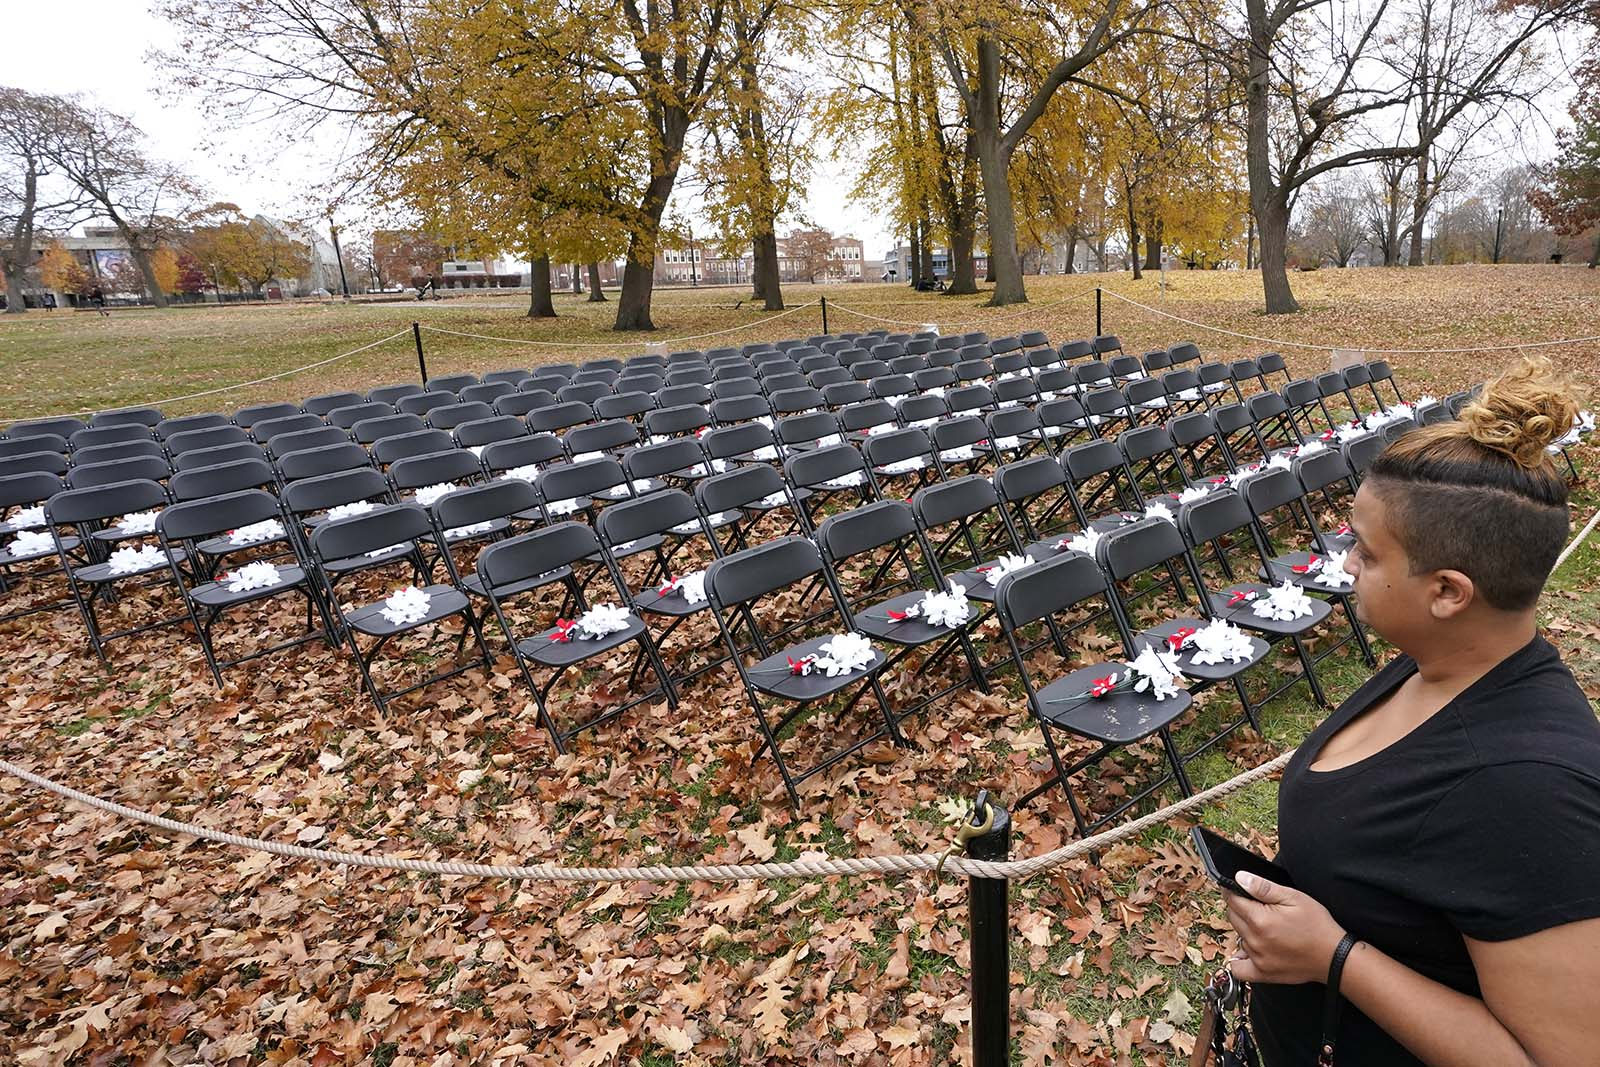 Eunice Lopez, of Lawrence, Massachusetts, looks at the COVID-19 Empty Chair Memorial on display at Campagnone Common, on Wednesday, November 11.